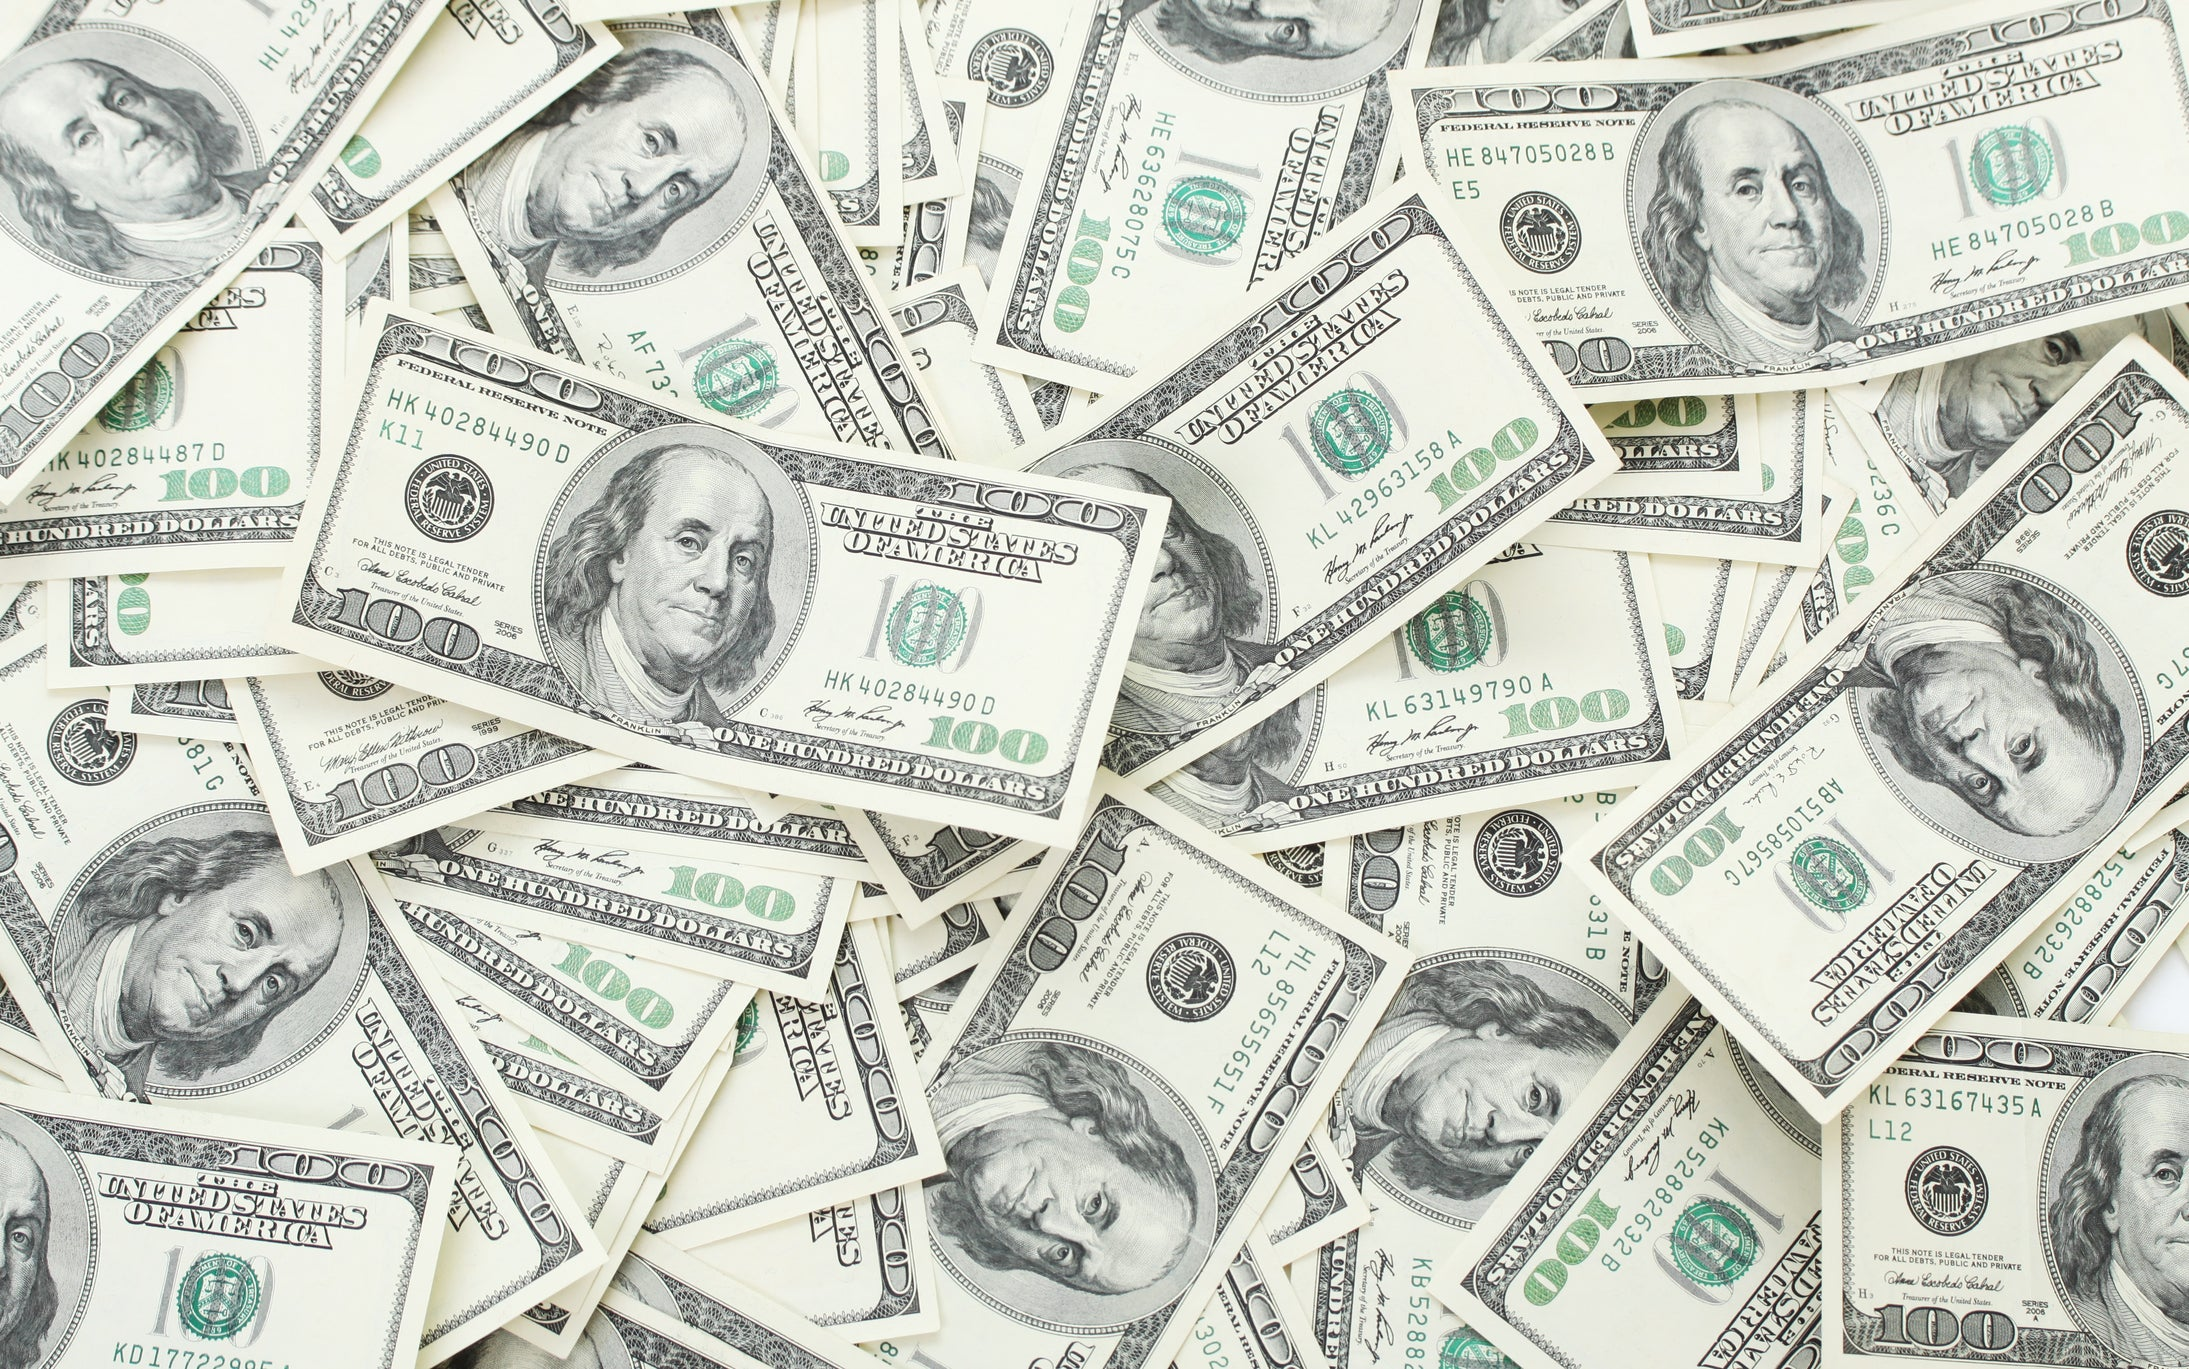 Most People With $1 Million Don't Consider Themselves Wealthy | The Motley Fool